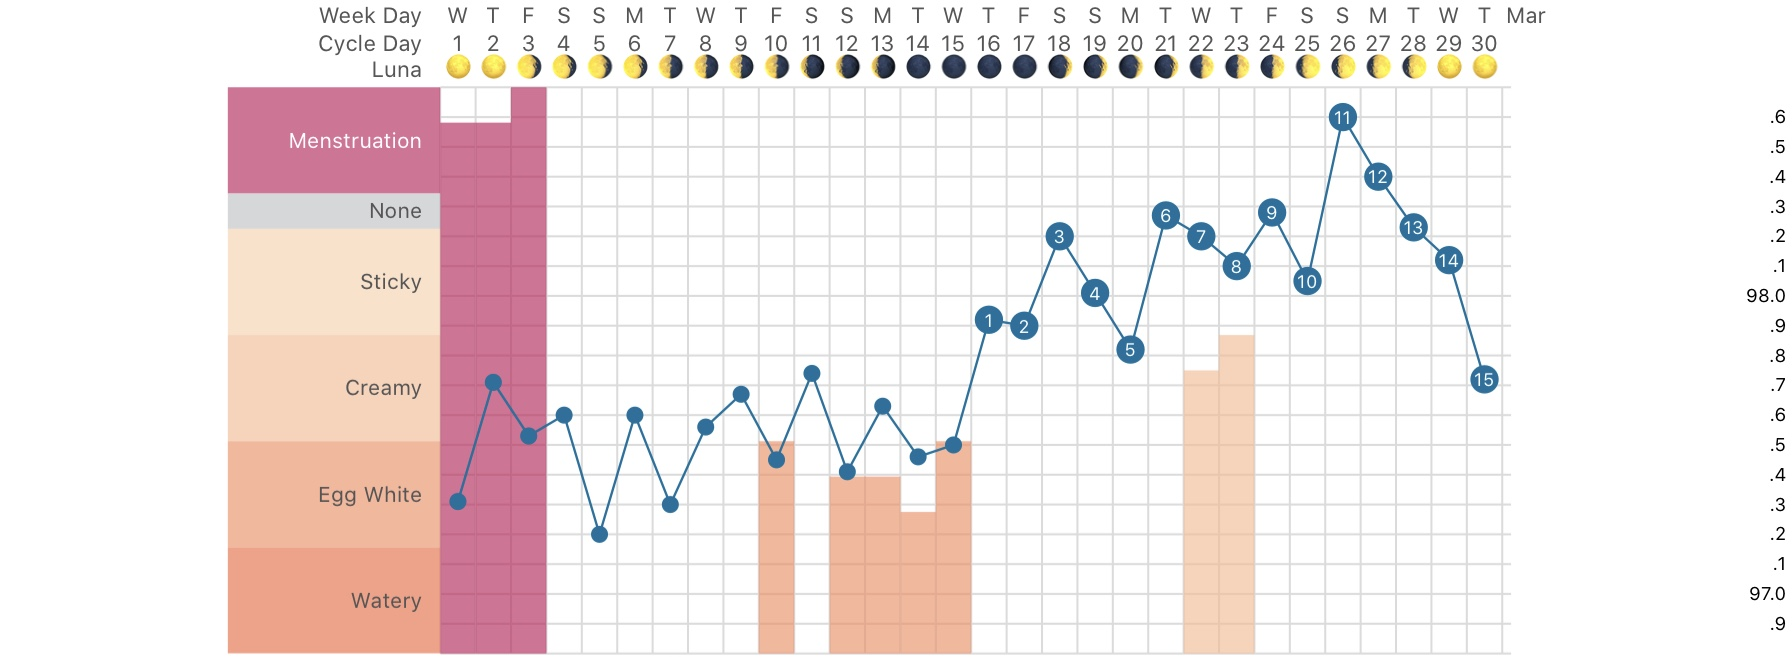 Month before seed cycling - lots of temperature peaks and valleys